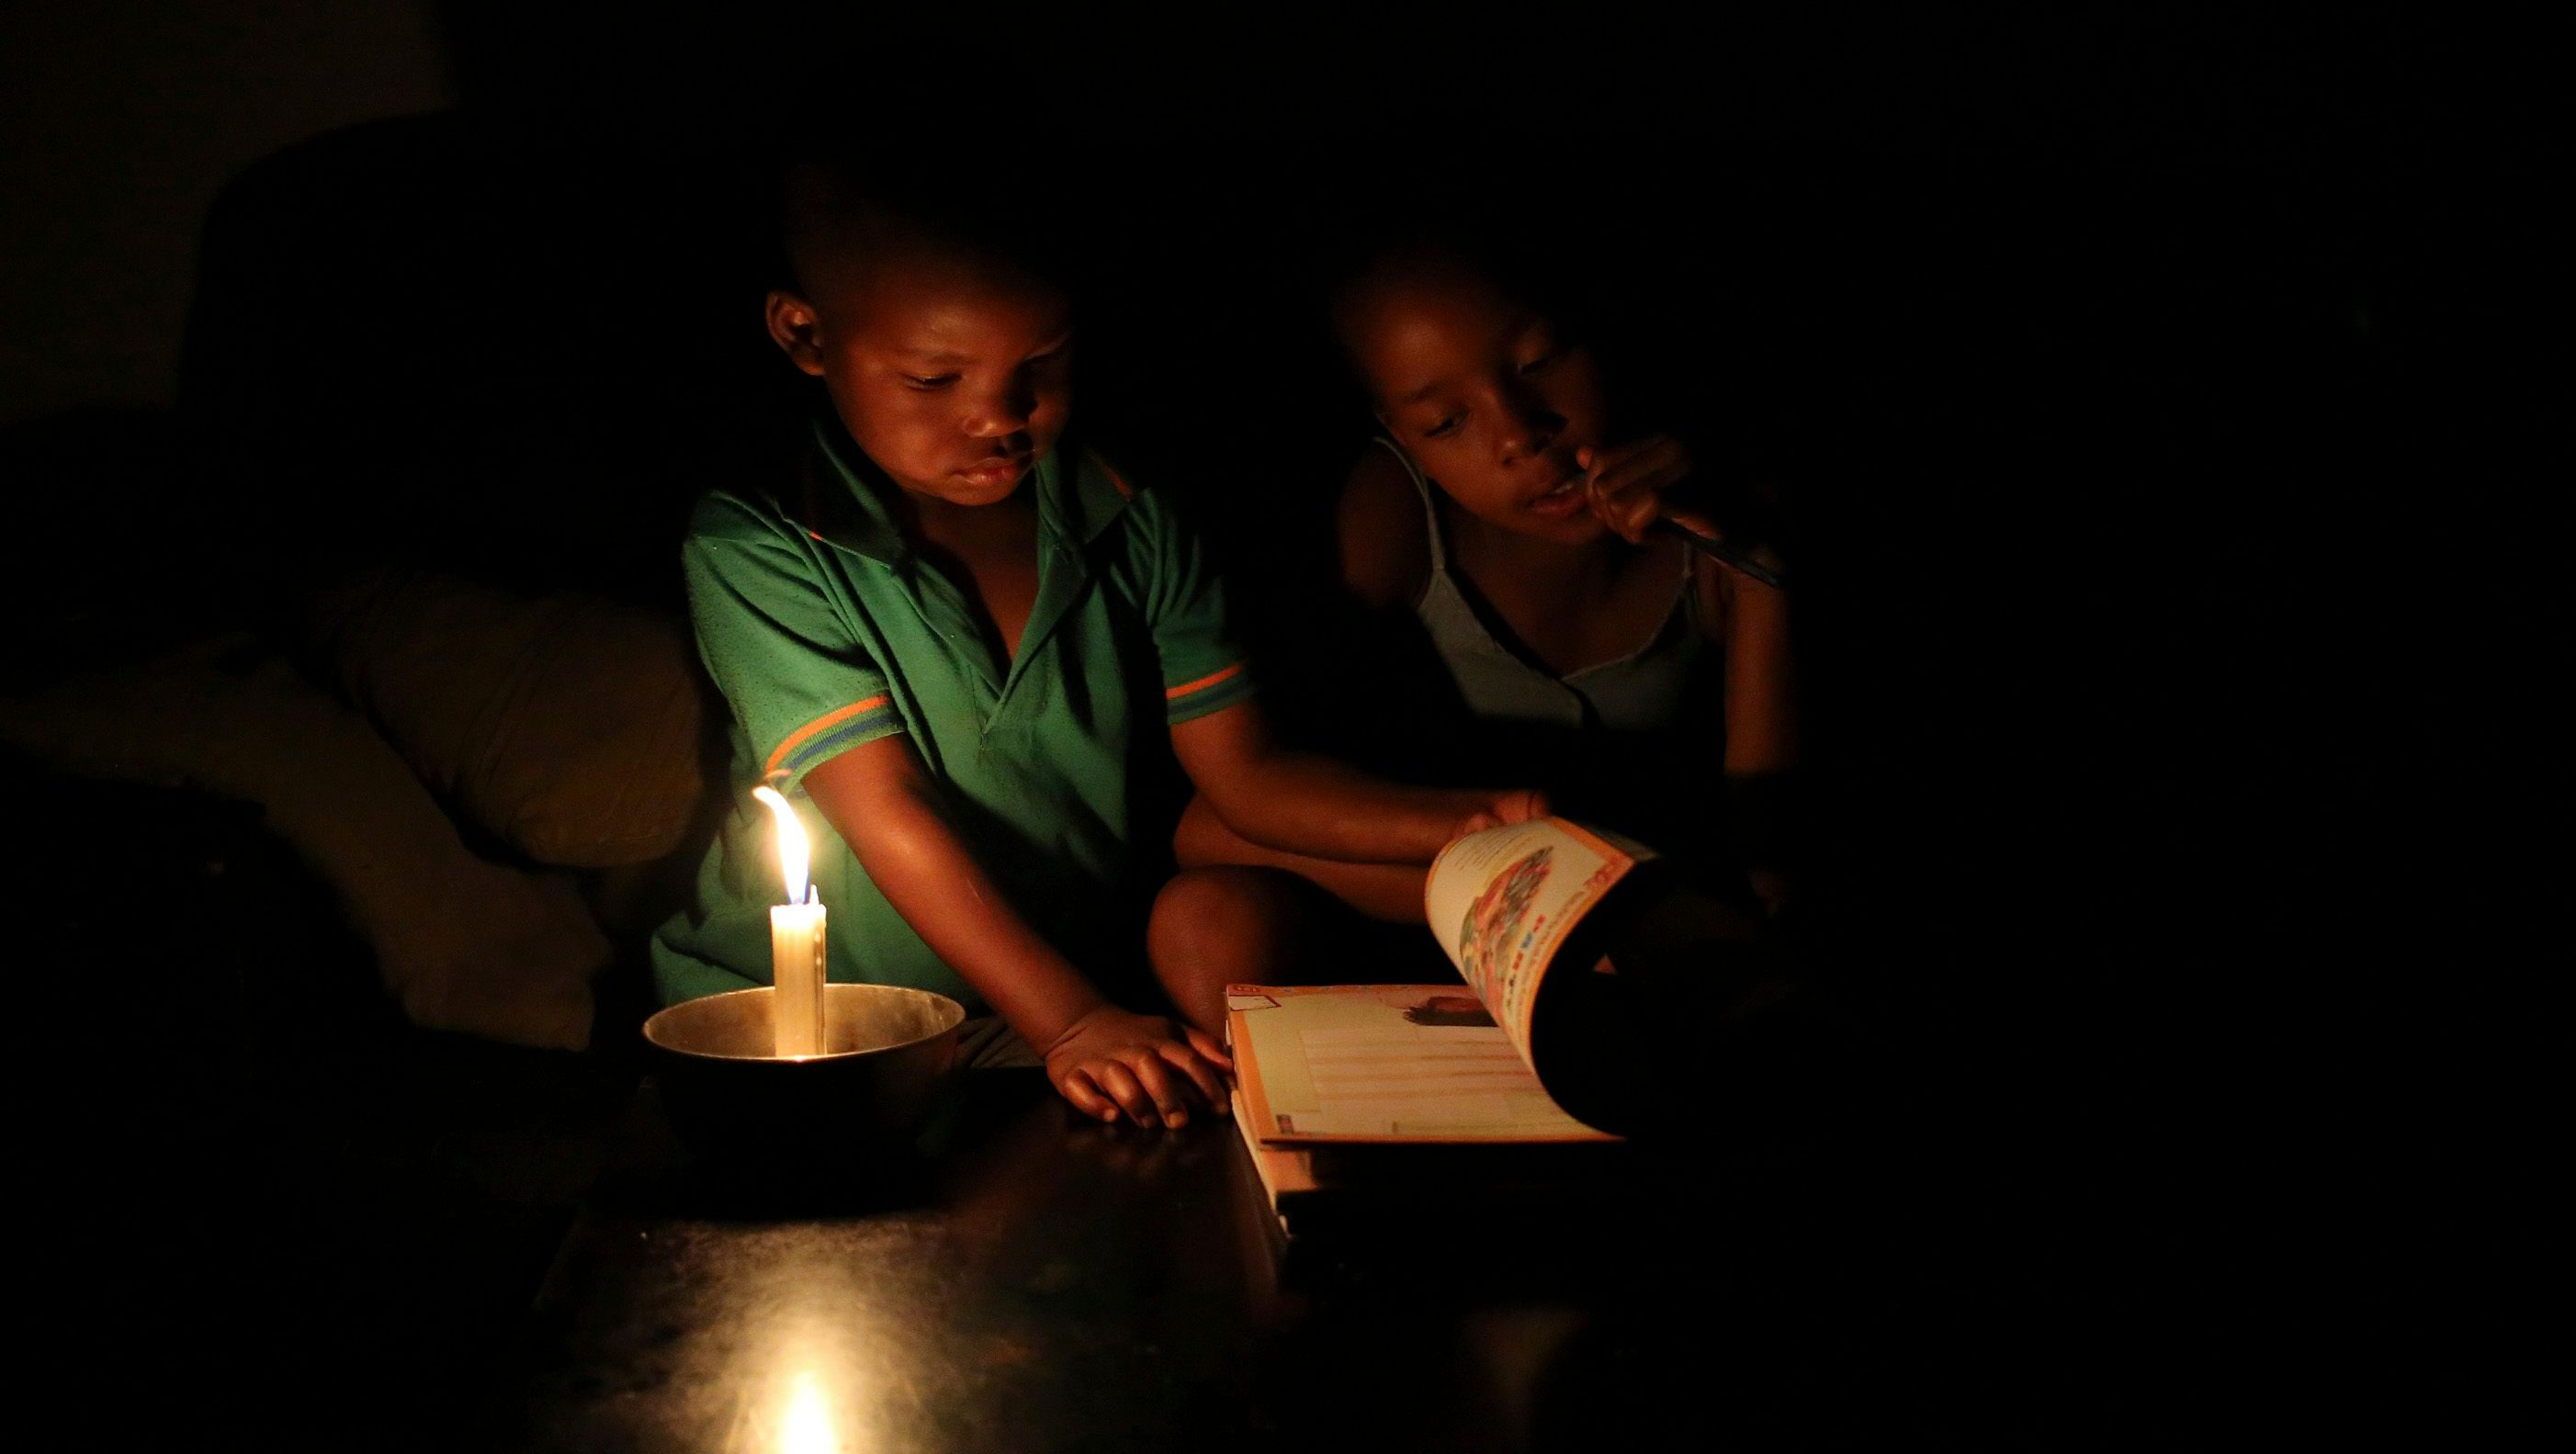 Rolling blackouts in Africa are disproportionately impacting the poor more than the rich